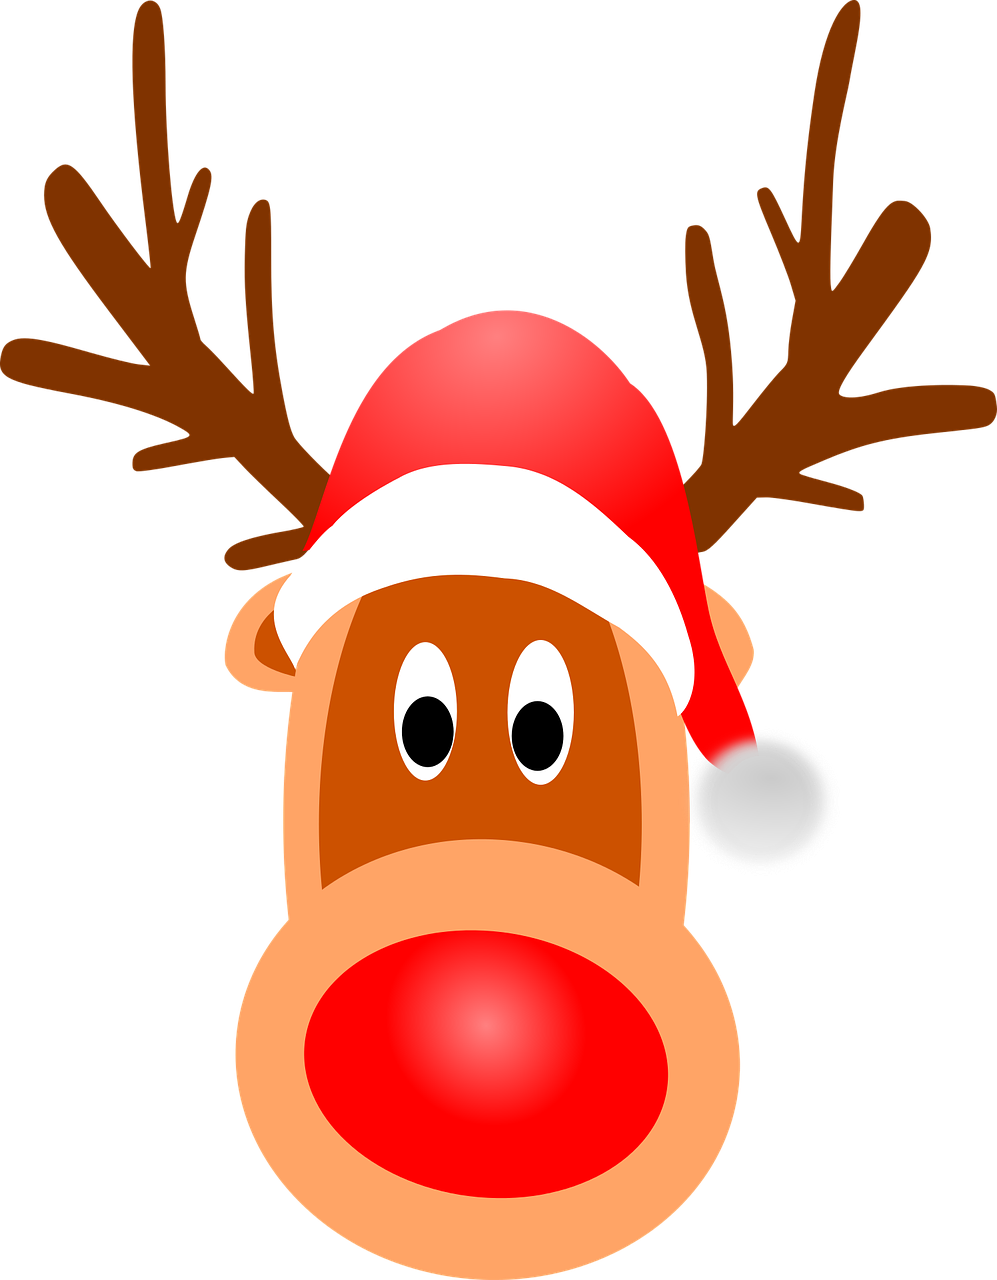 Rudolph antlers png. Reindeer costumes for dogs